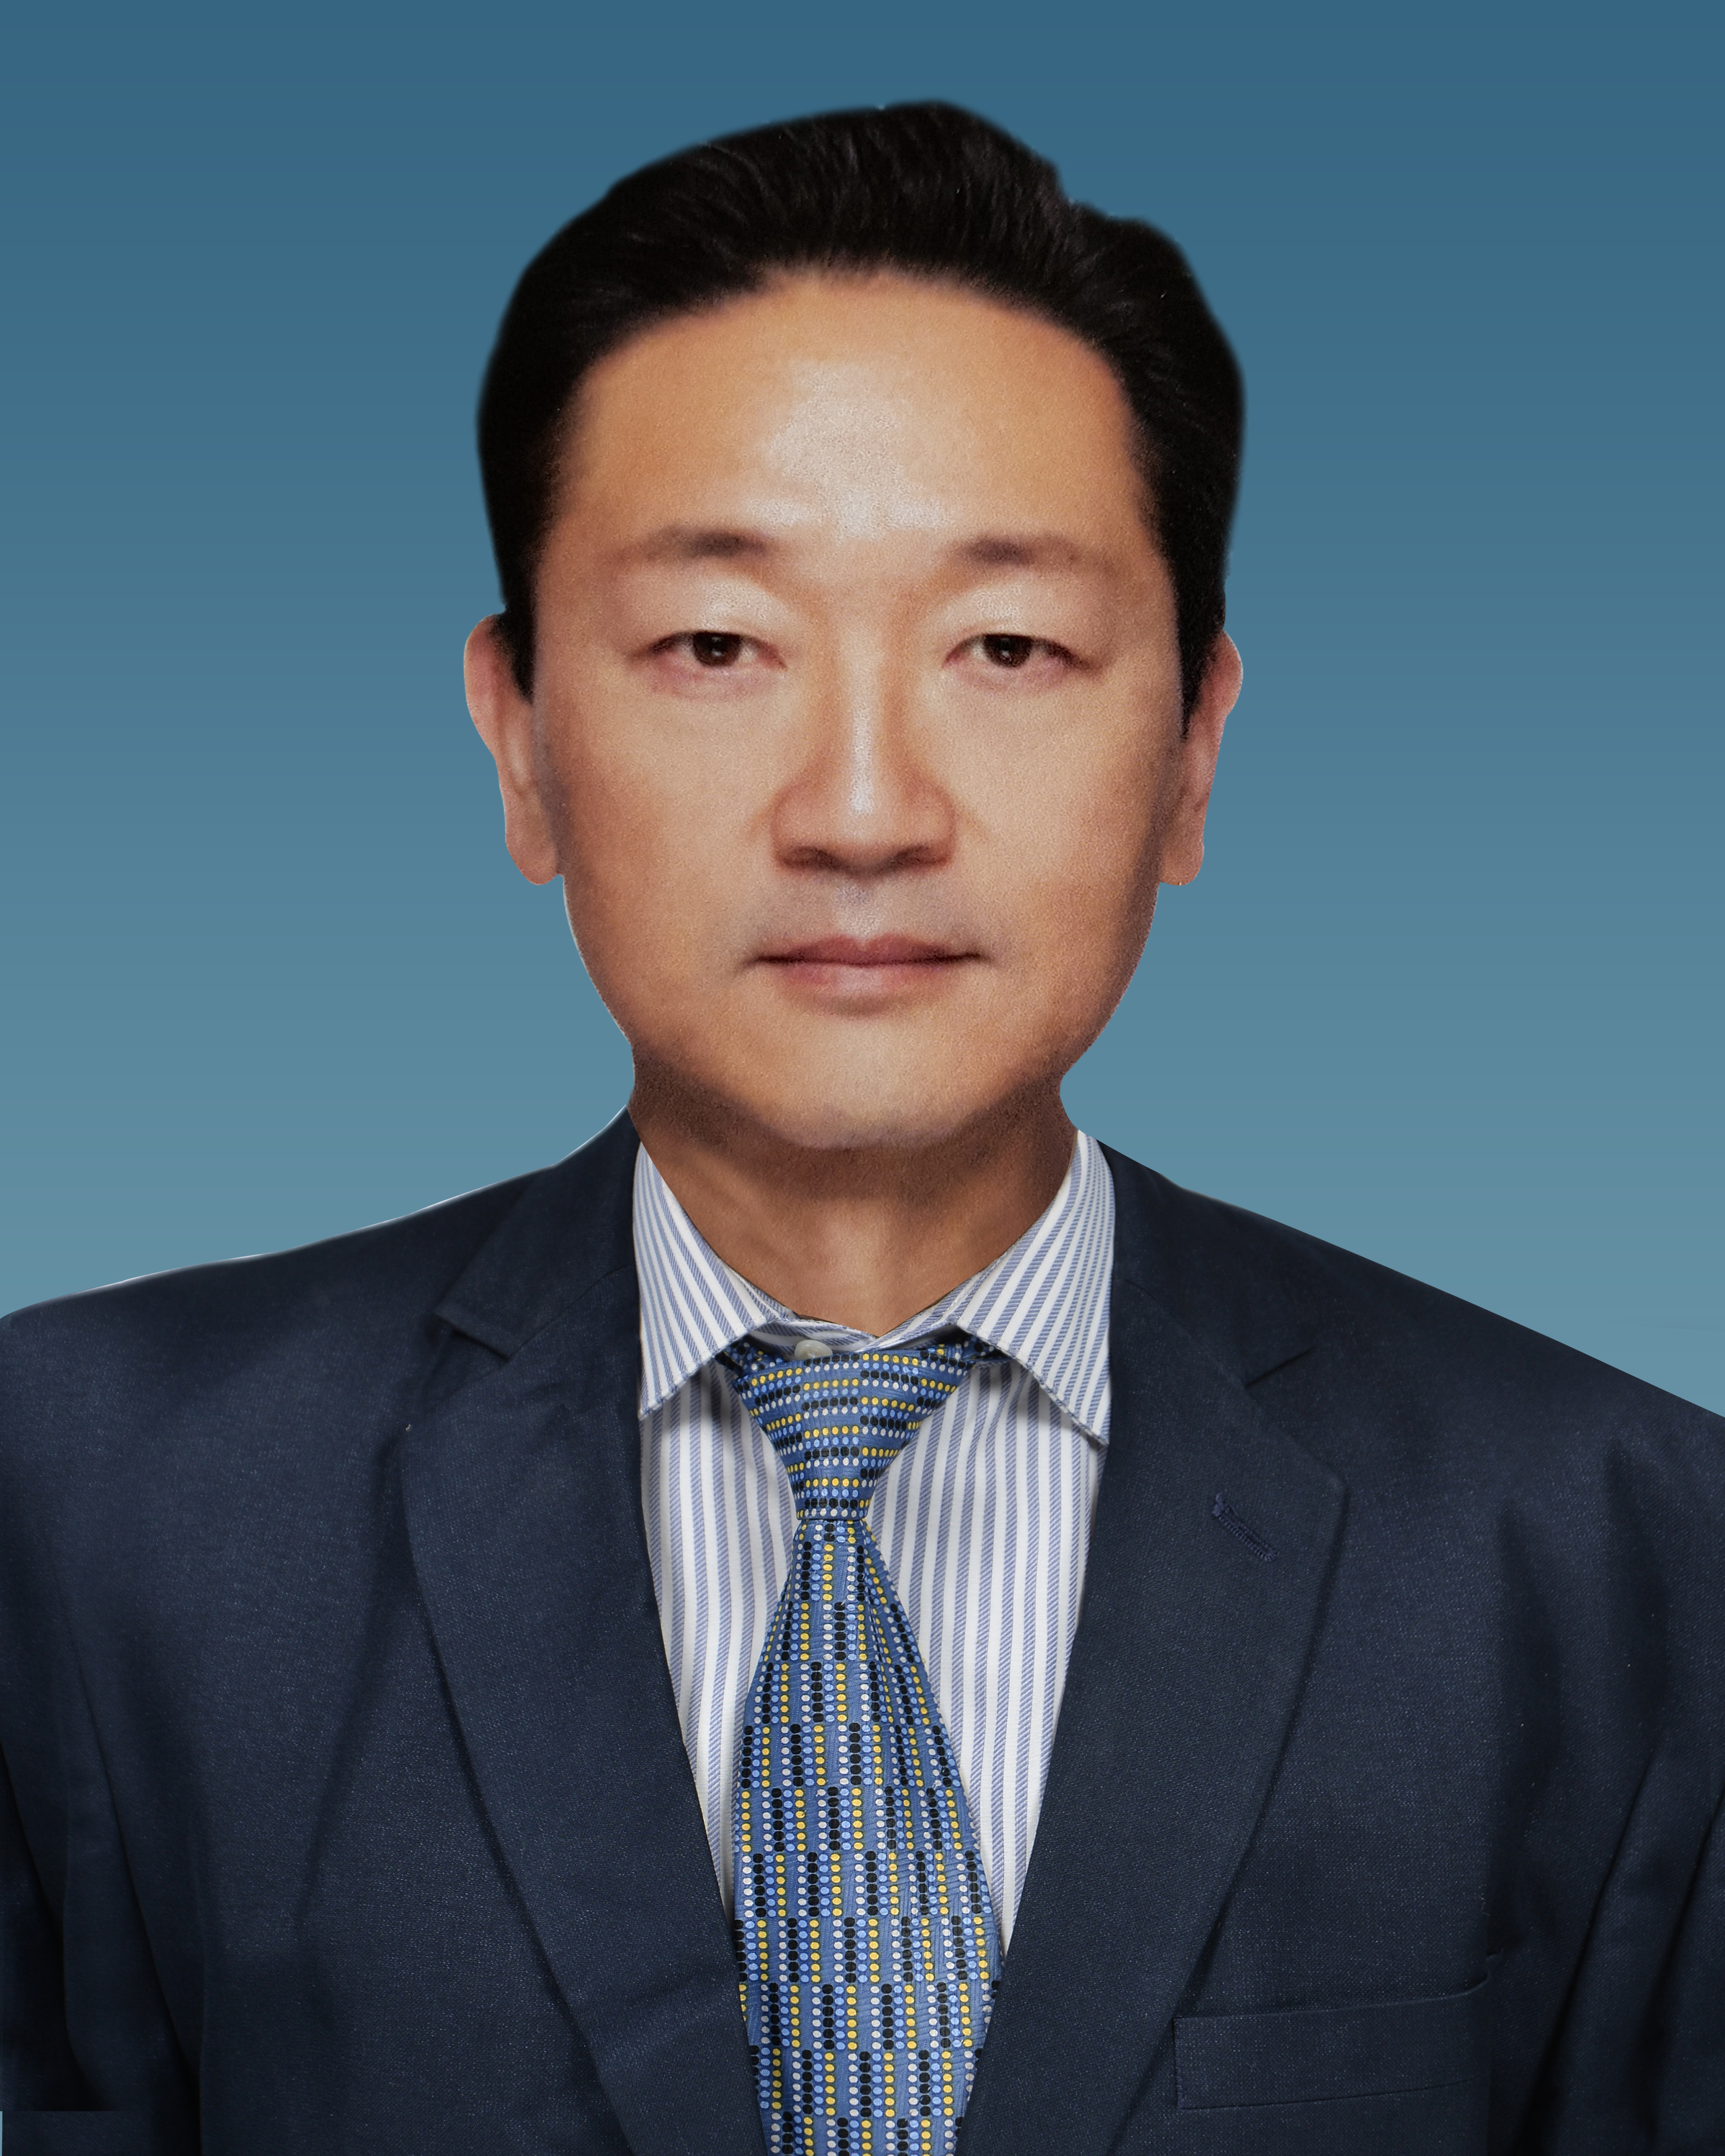 Mr. Hong Sang Cho